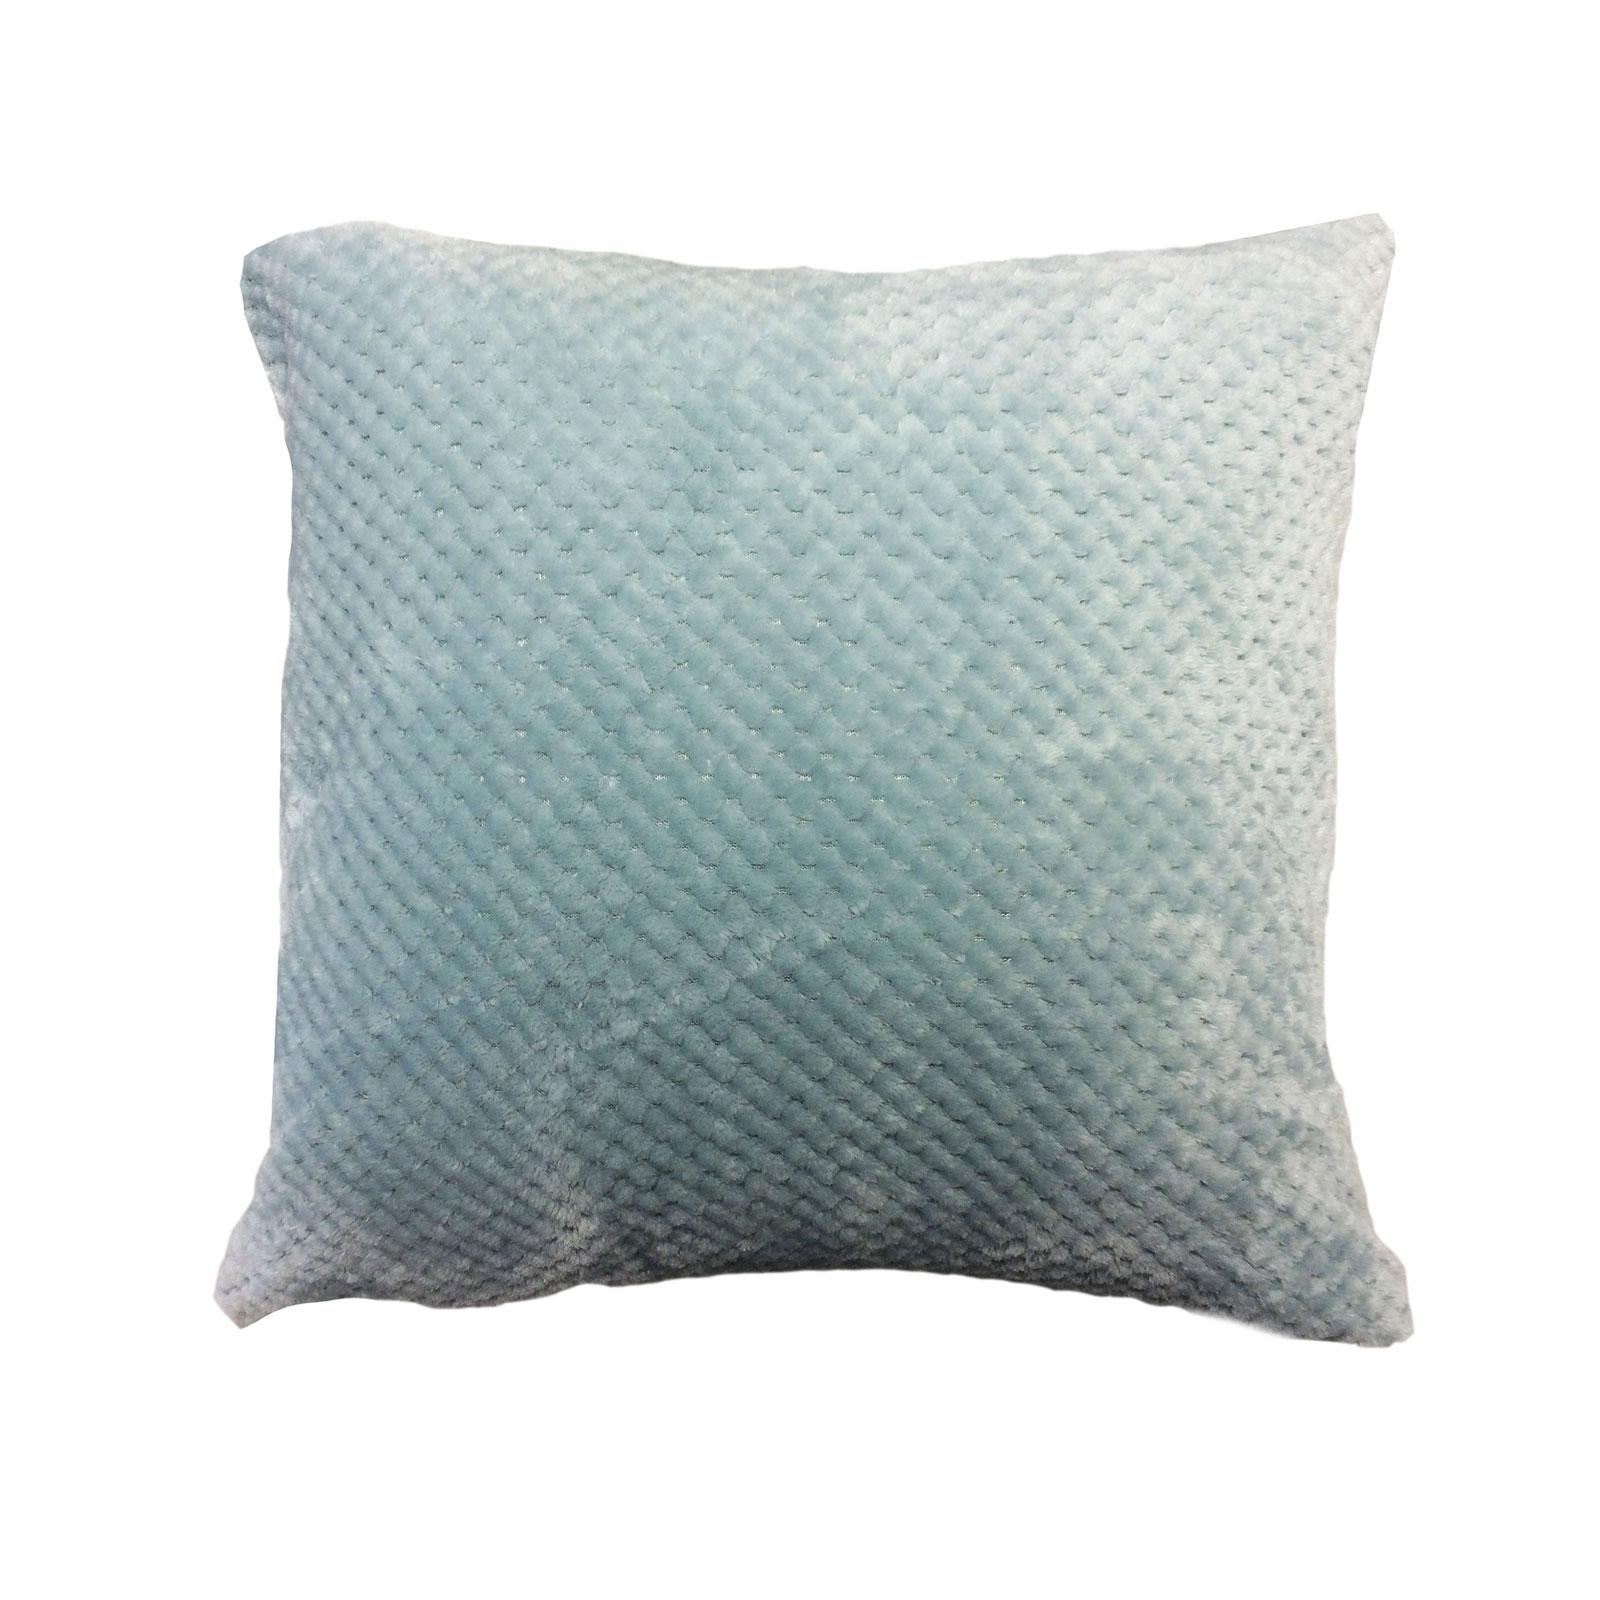 Large Throw Pillow Cases : Plain Large Waffle Cushion Cover Pillow Case Sofa Home Decor Unfilled 55 x 55 cm eBay